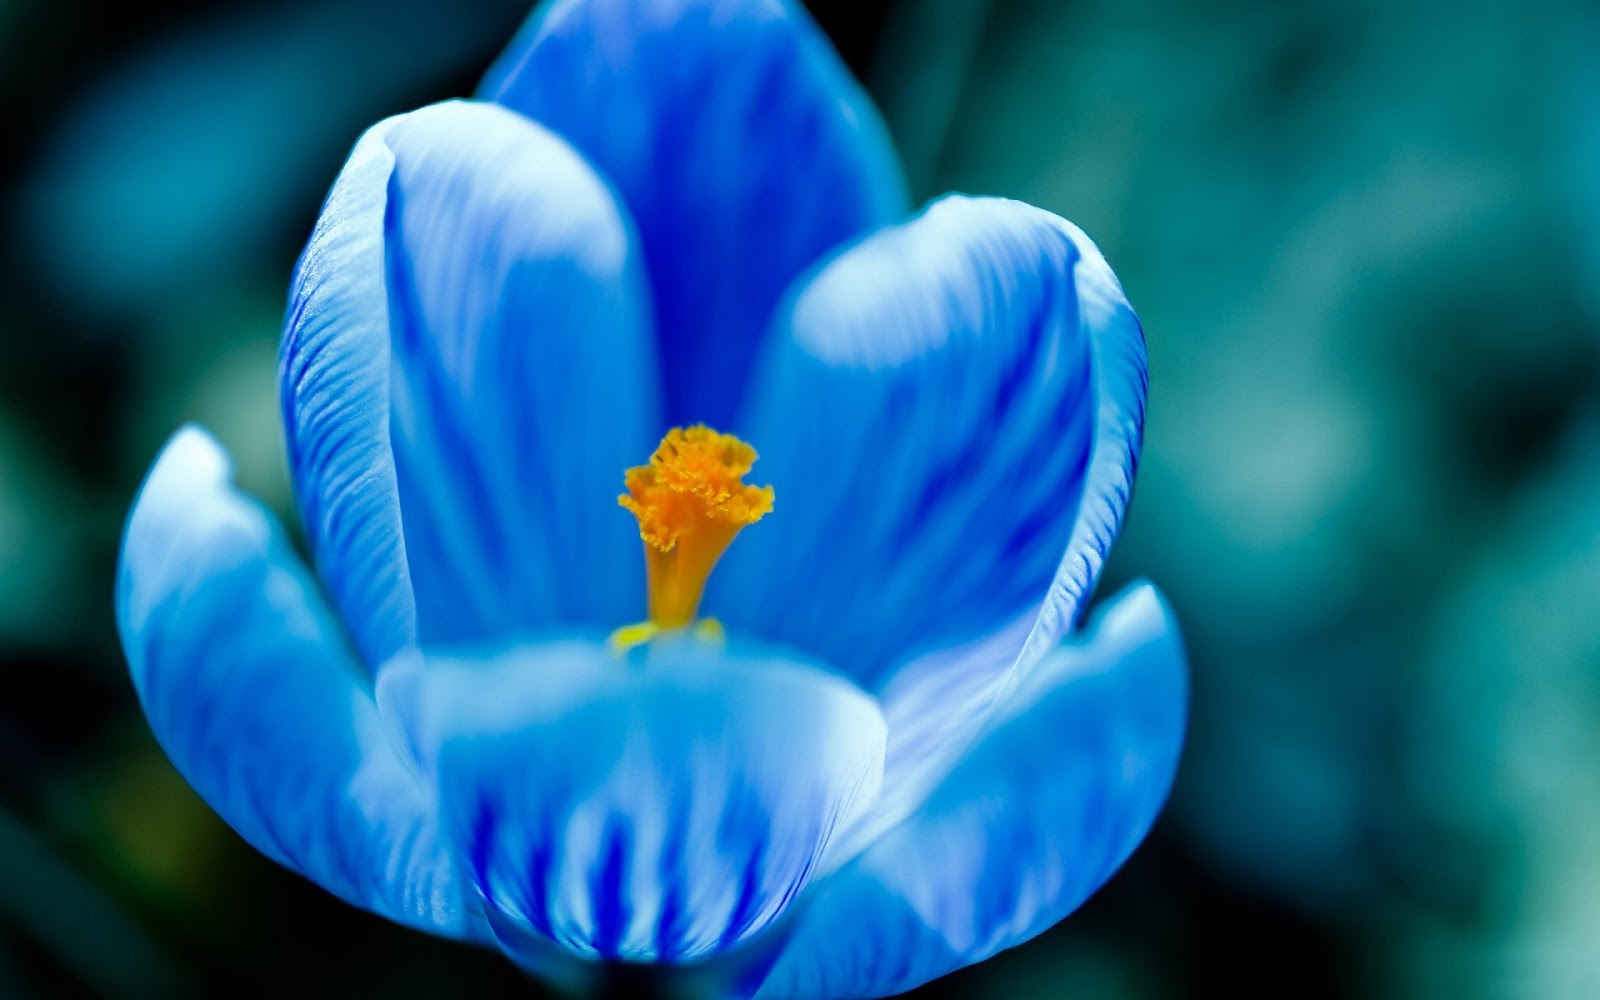 Blue Flower Wallpapers - asimBaBa | Free Software | Free ...